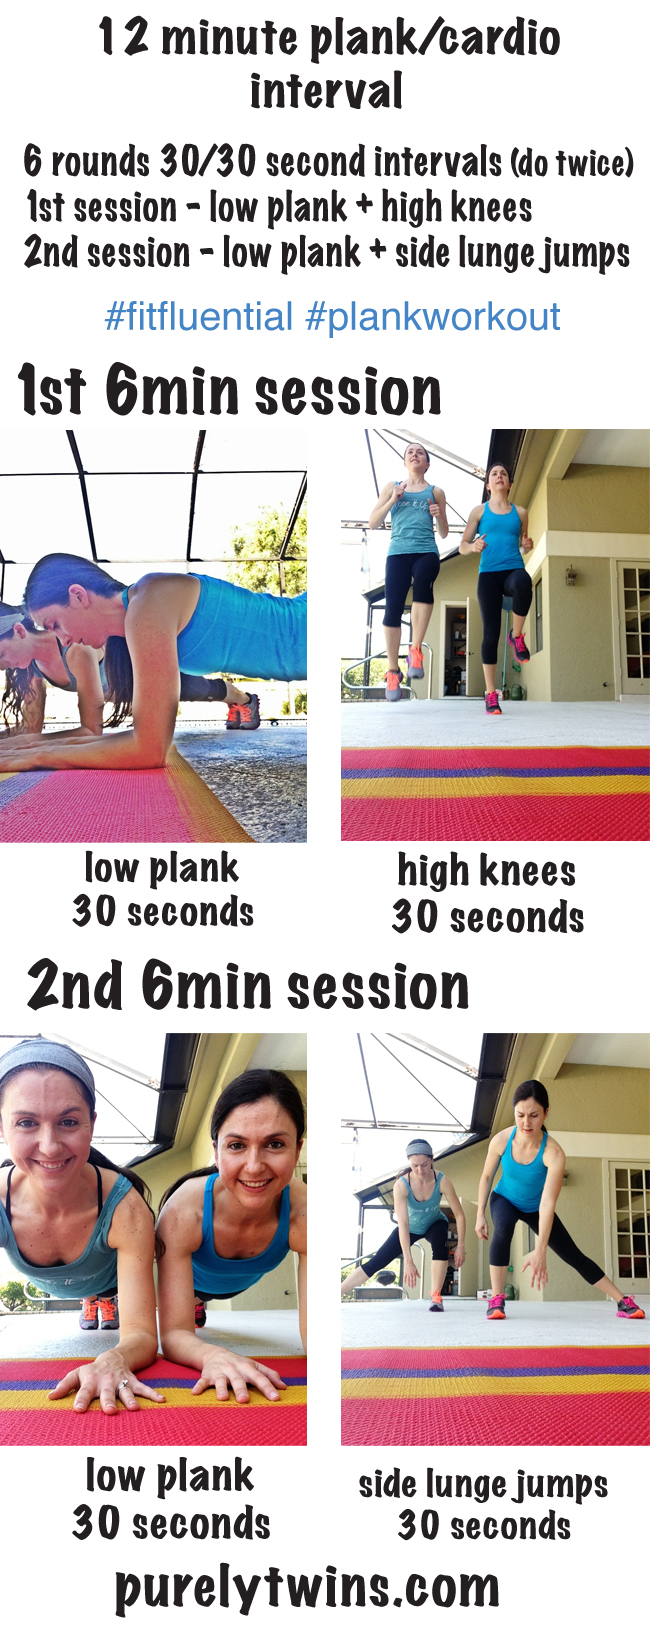 12-minute-plank-cardio-full-body-workout-purelytwins